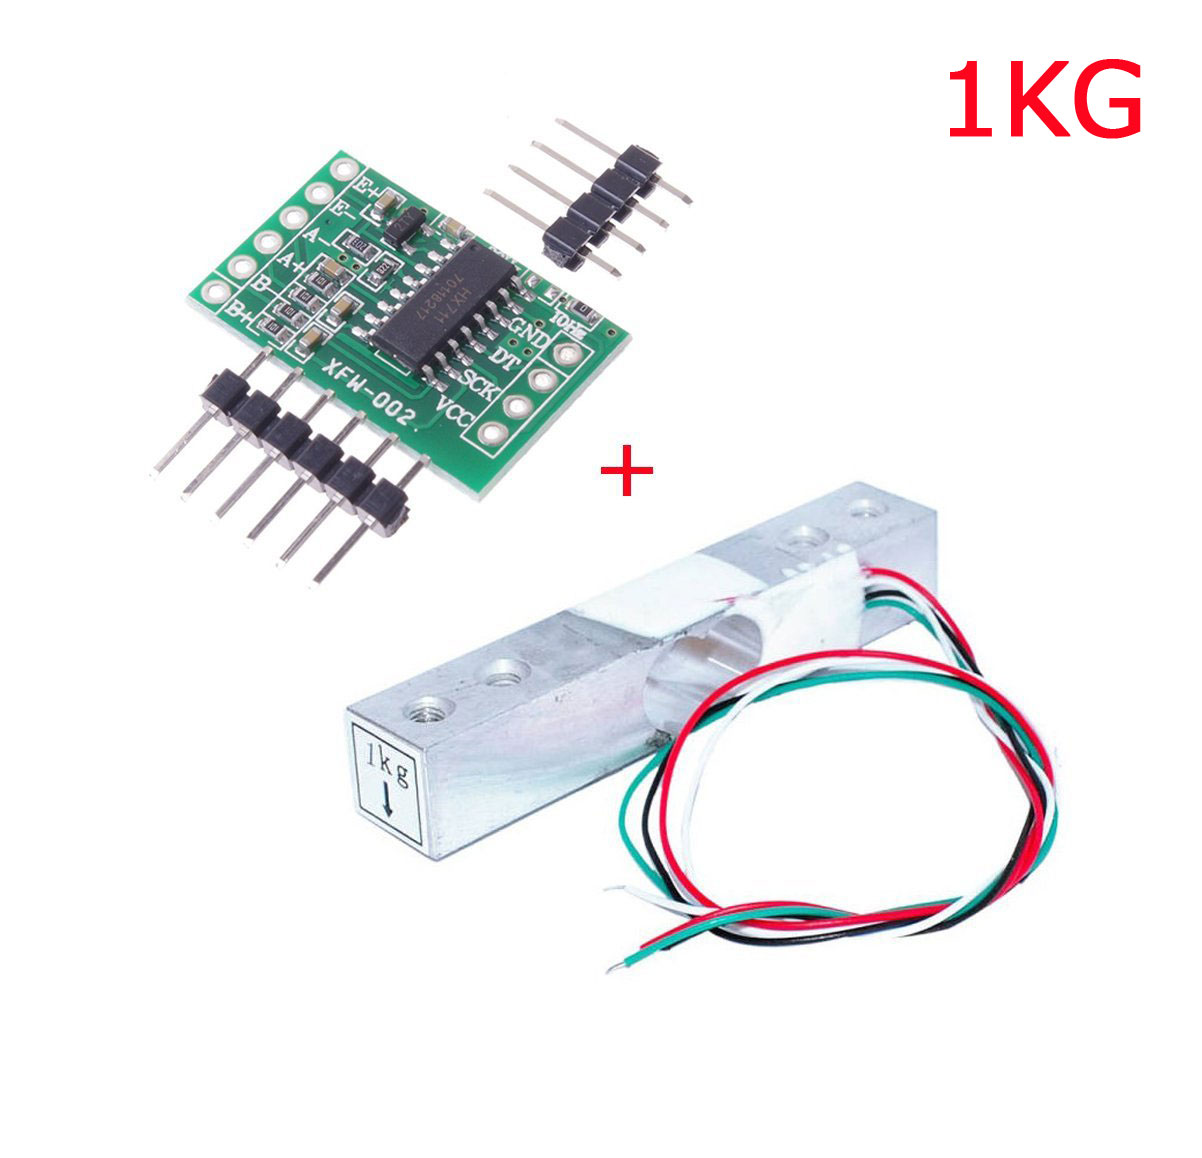 Digital Load Cell Weight Sensor 1KG Portable Electronic Kitchen Scale + HX711 We